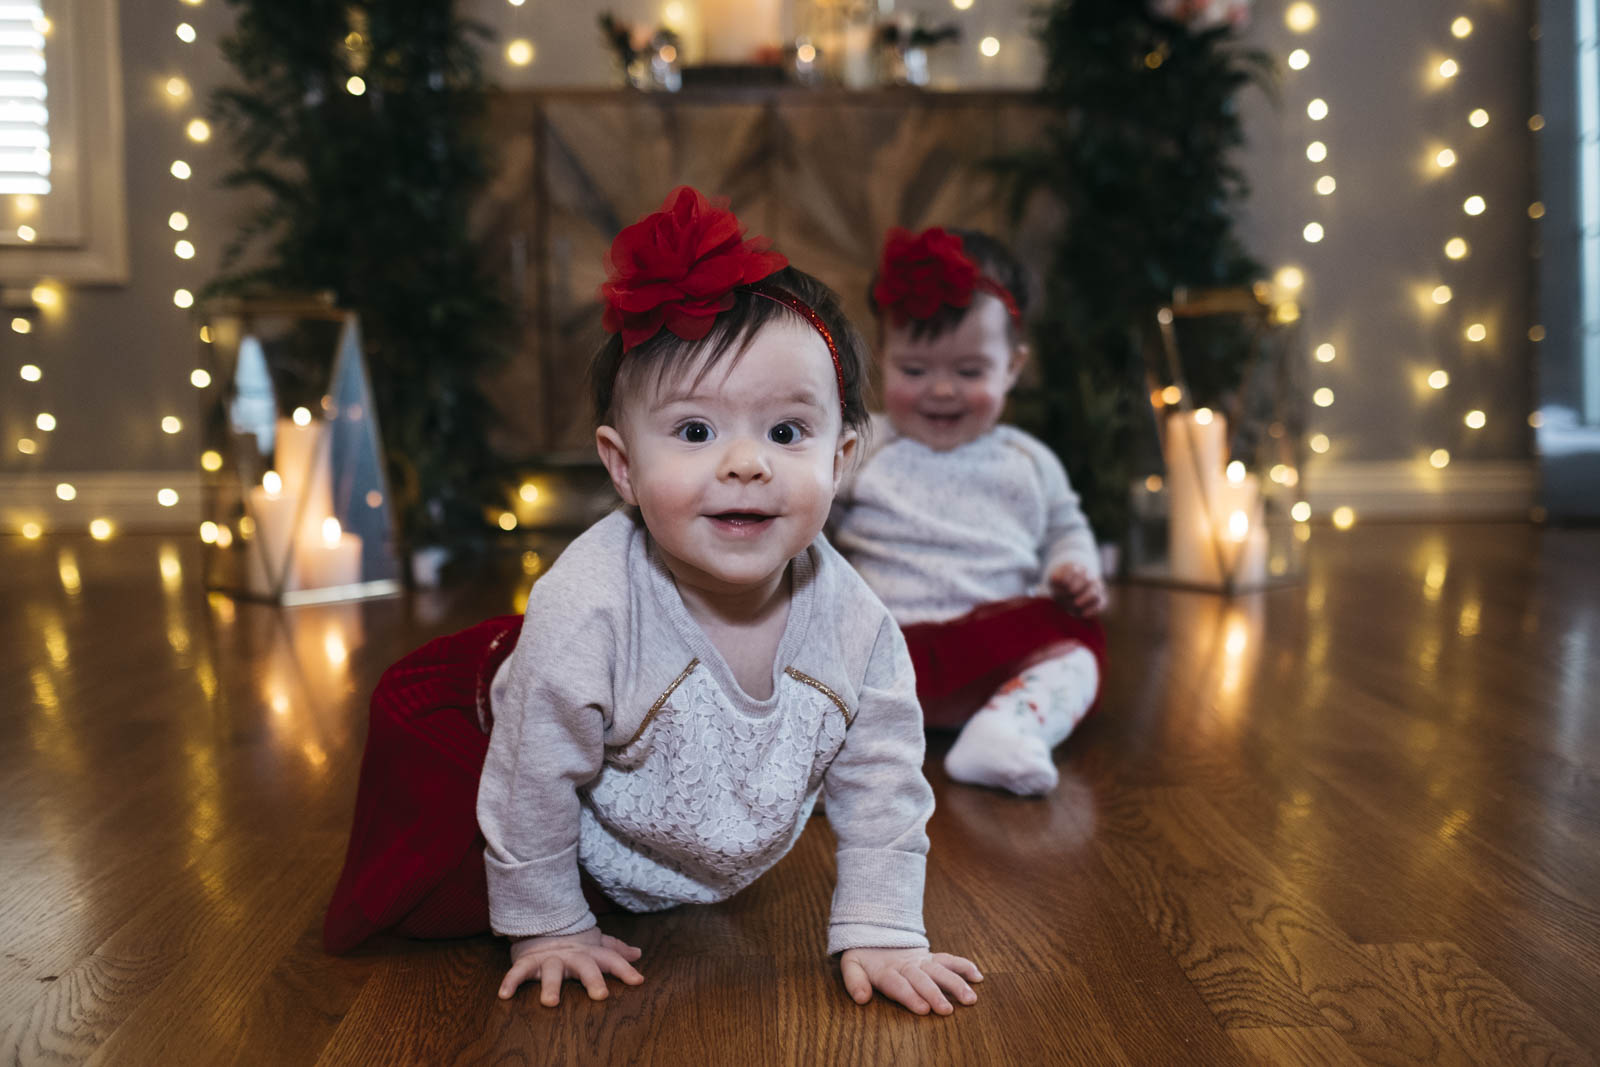 Twin babies at DIY New Year's Day Wedding ceremony.